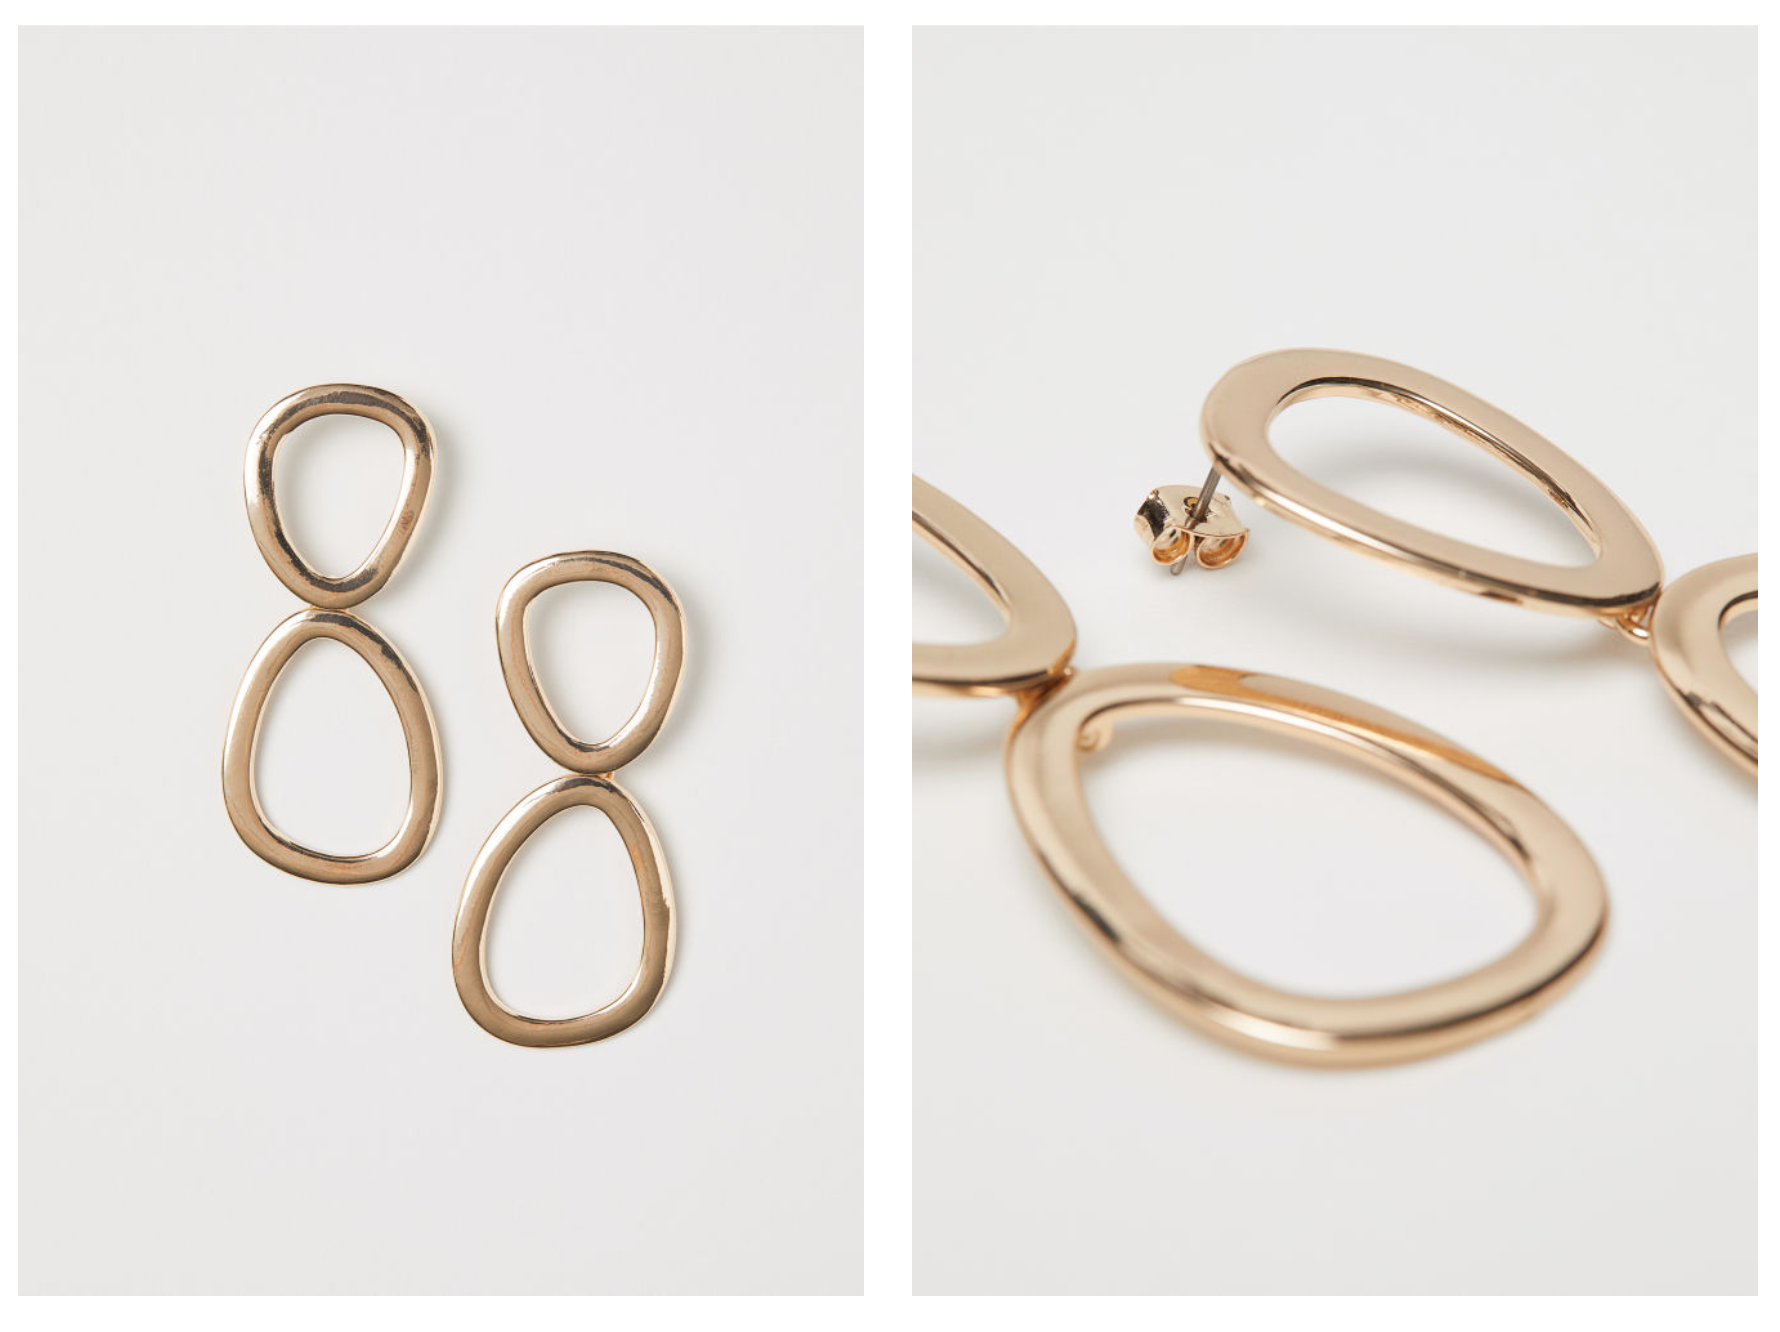 Gold Metal Earrings - As you can see, I'm a big fan of metal earrings. Especially when the design is geometric like those pretty ones from H&M which only cost £6.99! Get them here